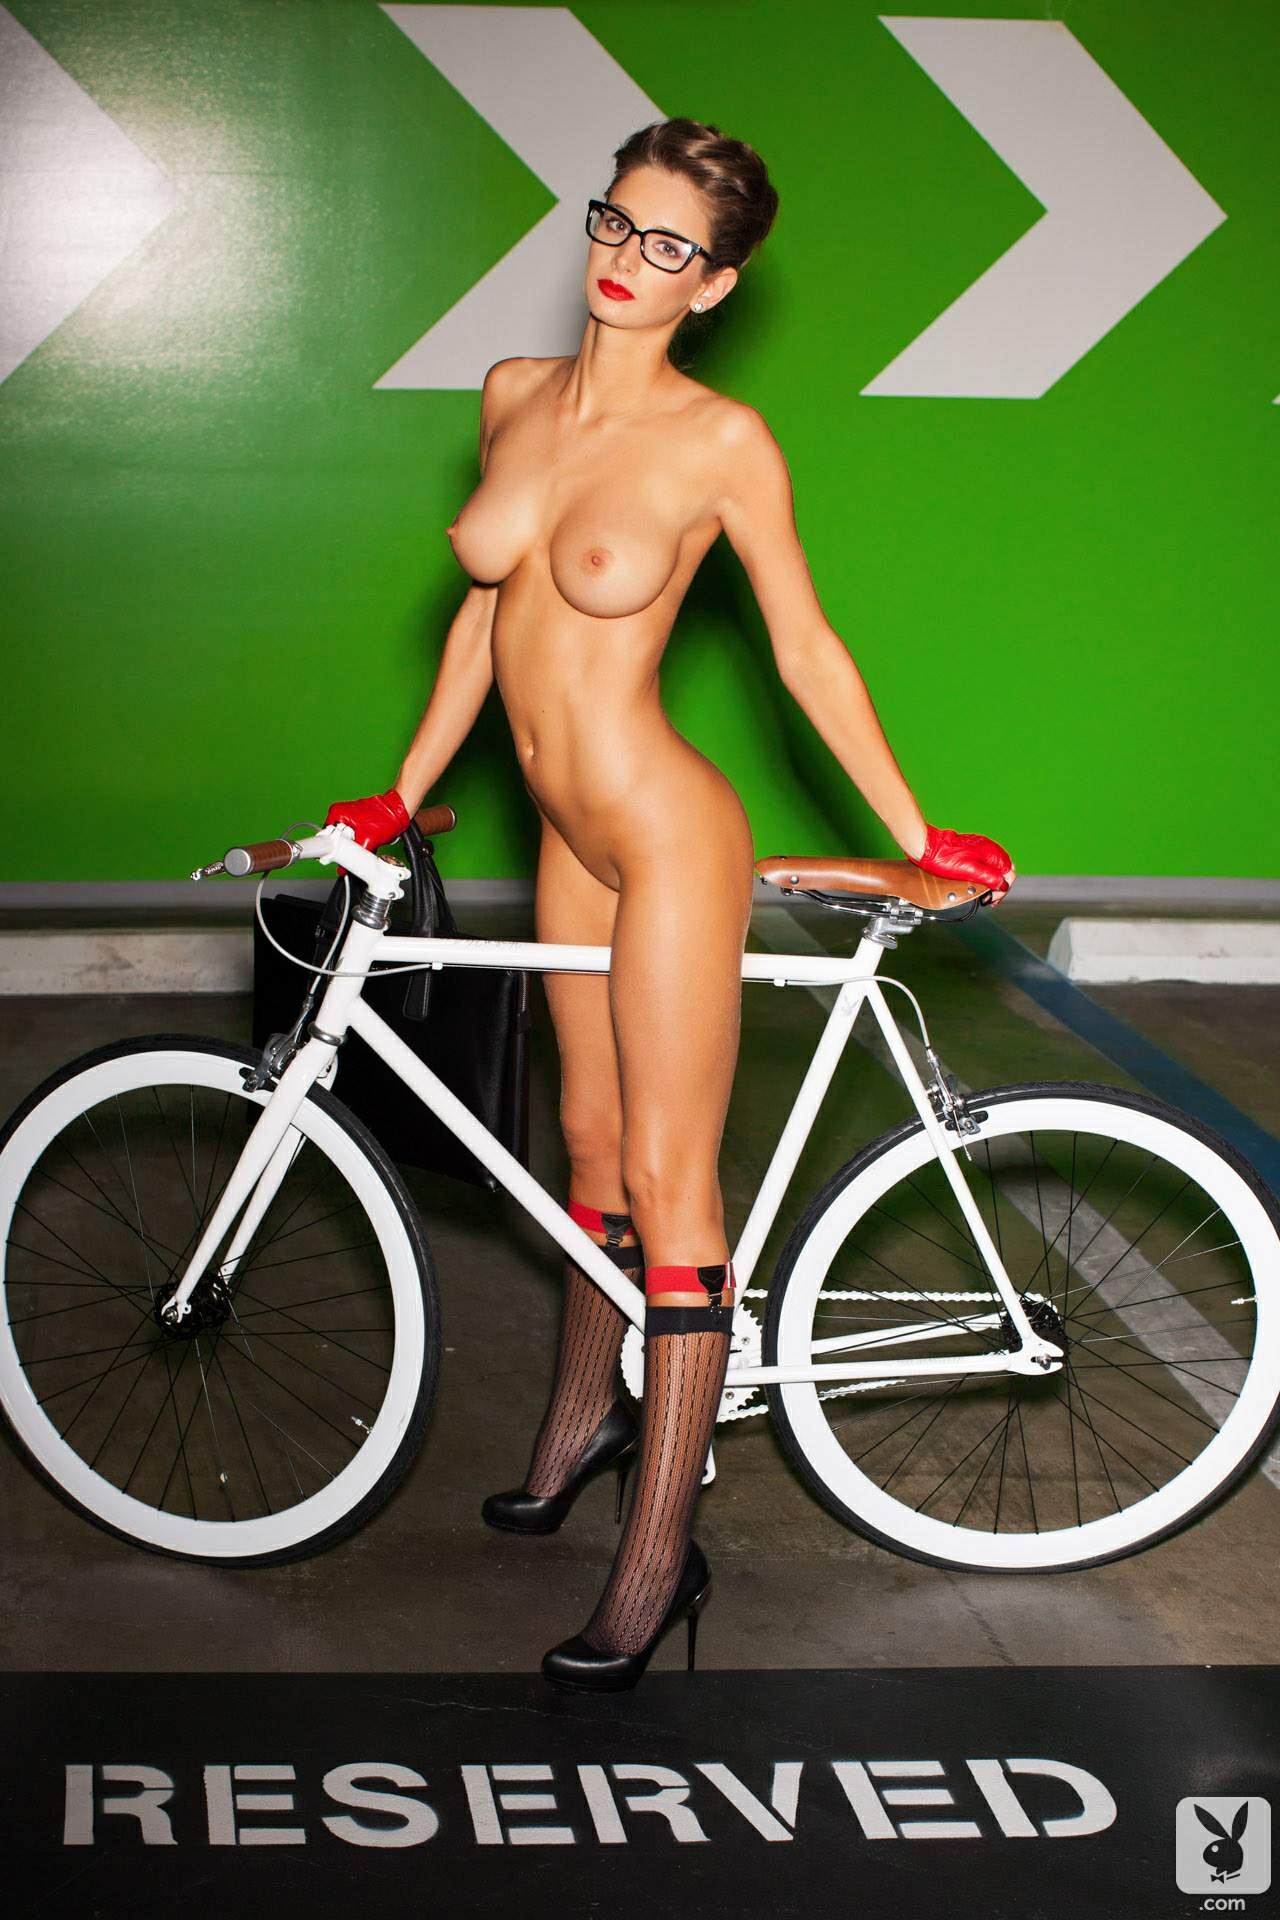 emily_agnes_playboy_bikegirls_blog_7.jpg